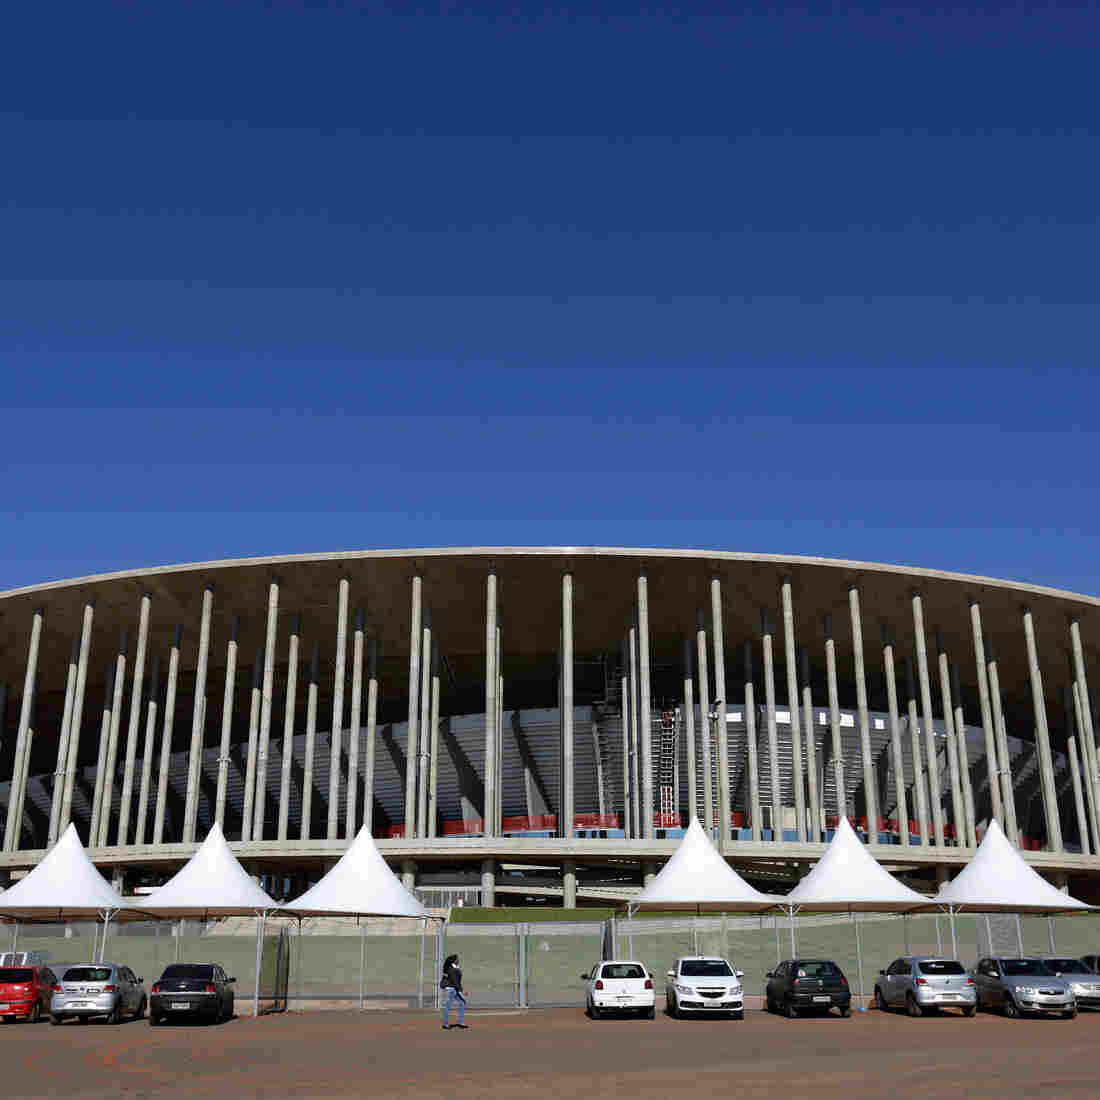 Brazil's World Cup Legacy Includes $550M Stadium-Turned-Parking Lot